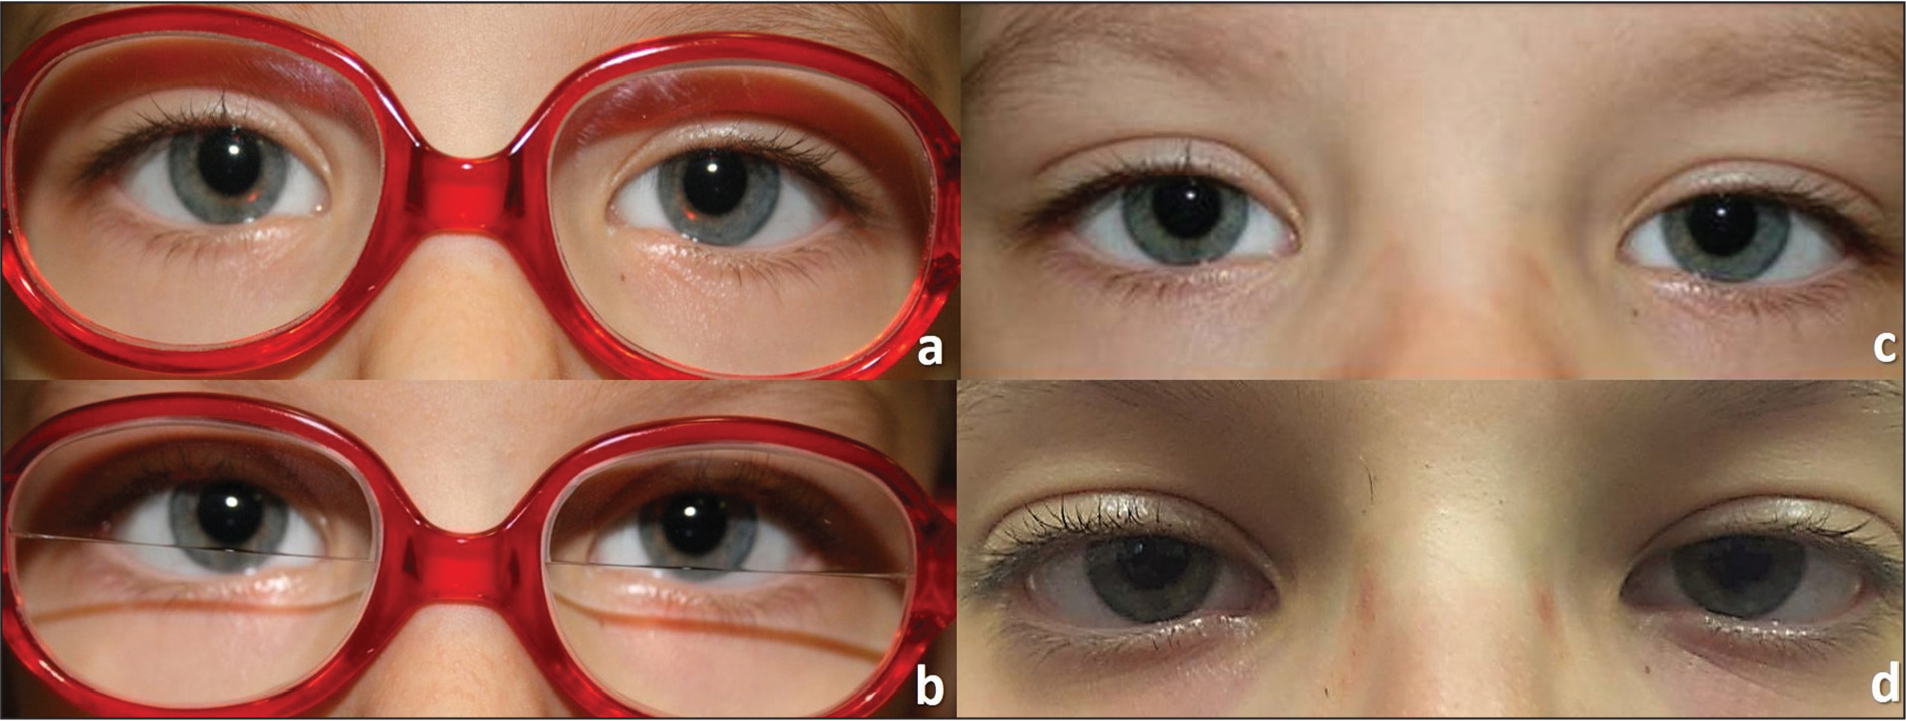 Case 2 (A–B) 2 months after botulinum toxin type A injection with glasses. (C) Orthophoria with bifocal lenses at 4 months after botulinum toxin type A injection. (D) Eight years after botulinum toxin type A injection without glasses.